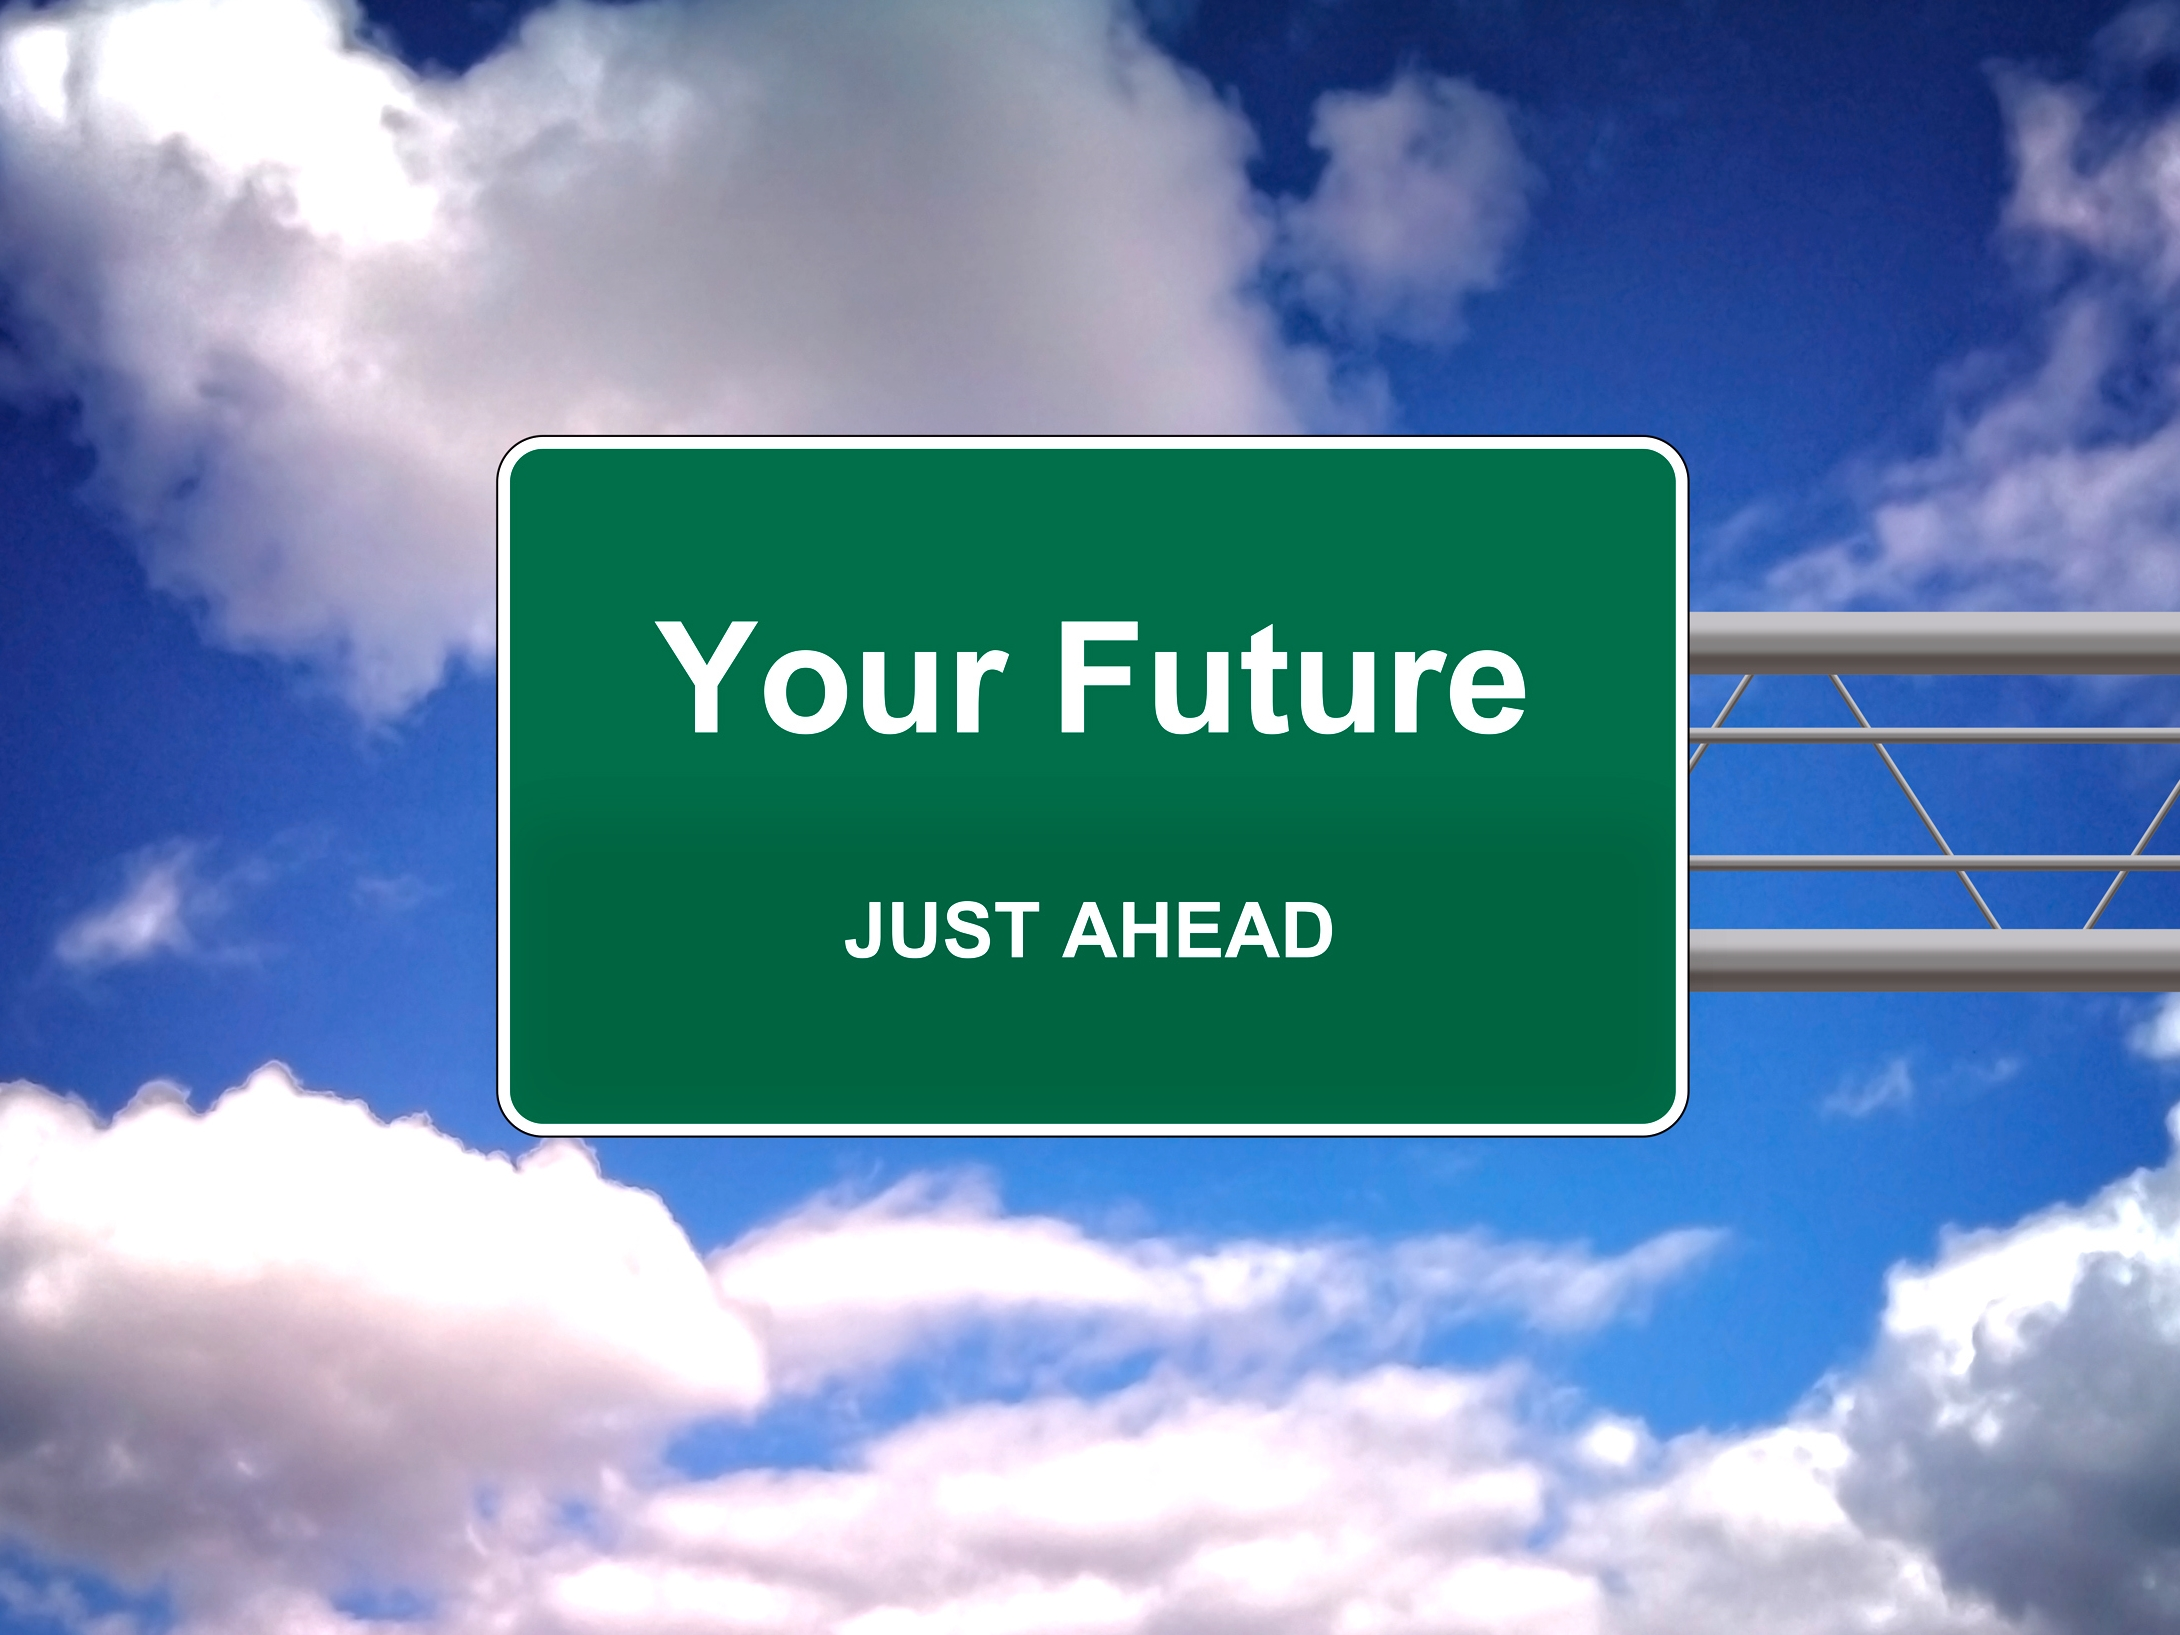 Your Future Just Ahead road sign - Future concept